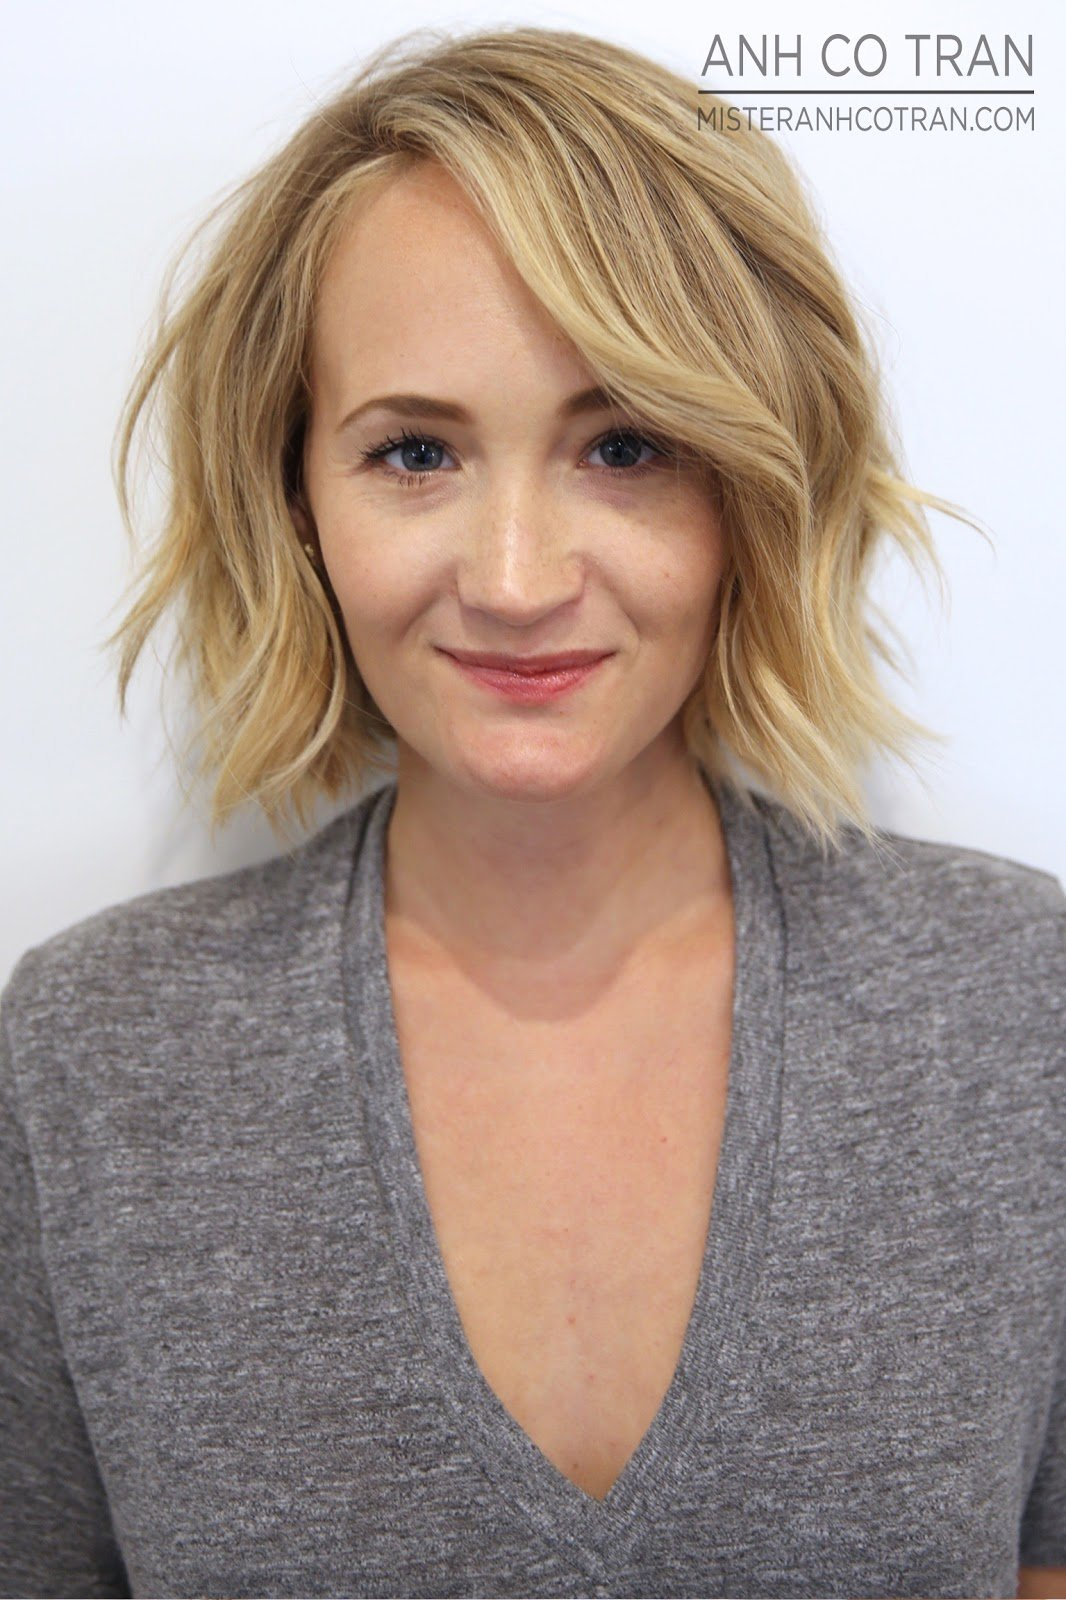 The Best Short Hair Saturday From All Angles Anh Co Tran Pictures